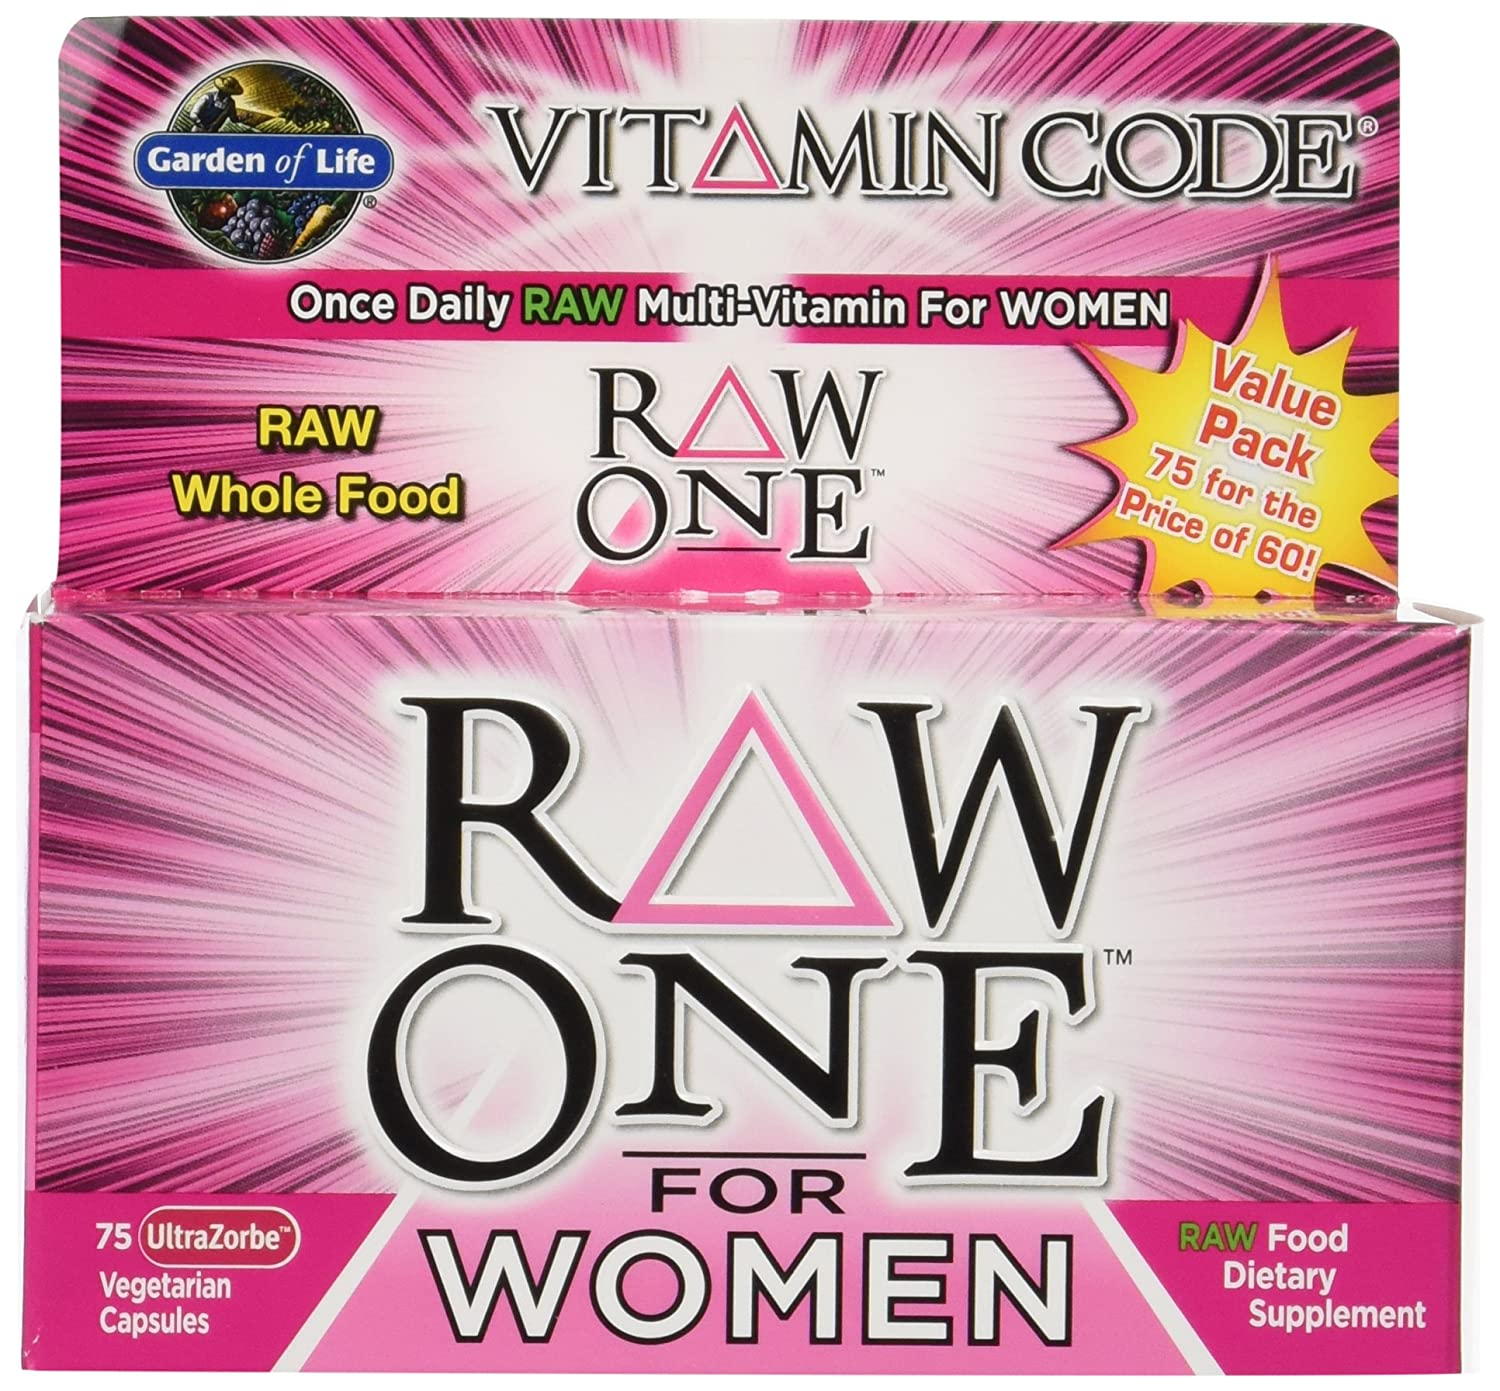 Garden of Life Vitamin Code Raw One for Women 2 packs of 75 each